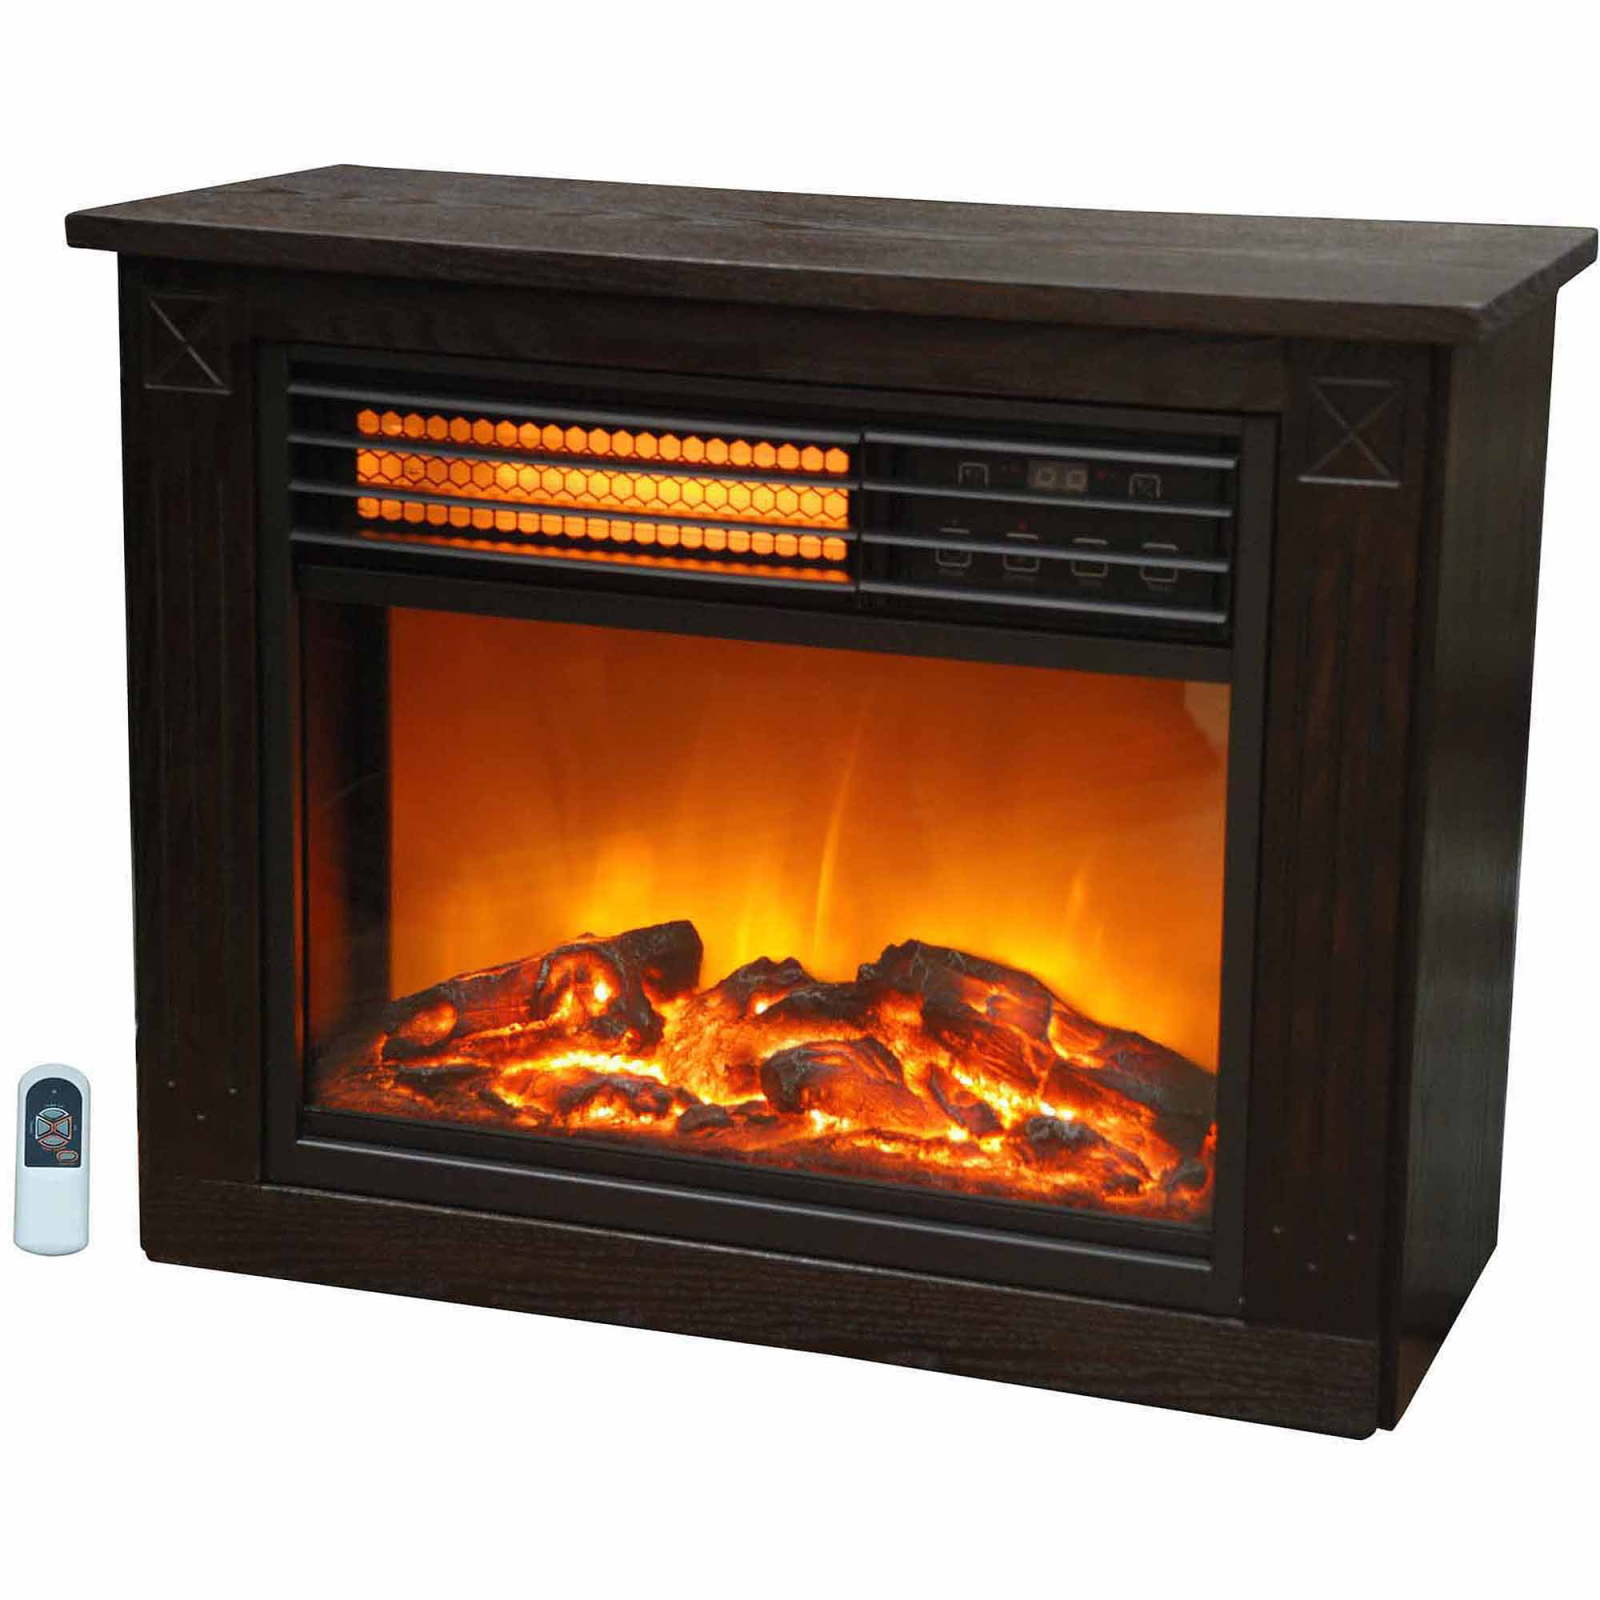 home living room portable stove electric fireplace heater 1500w